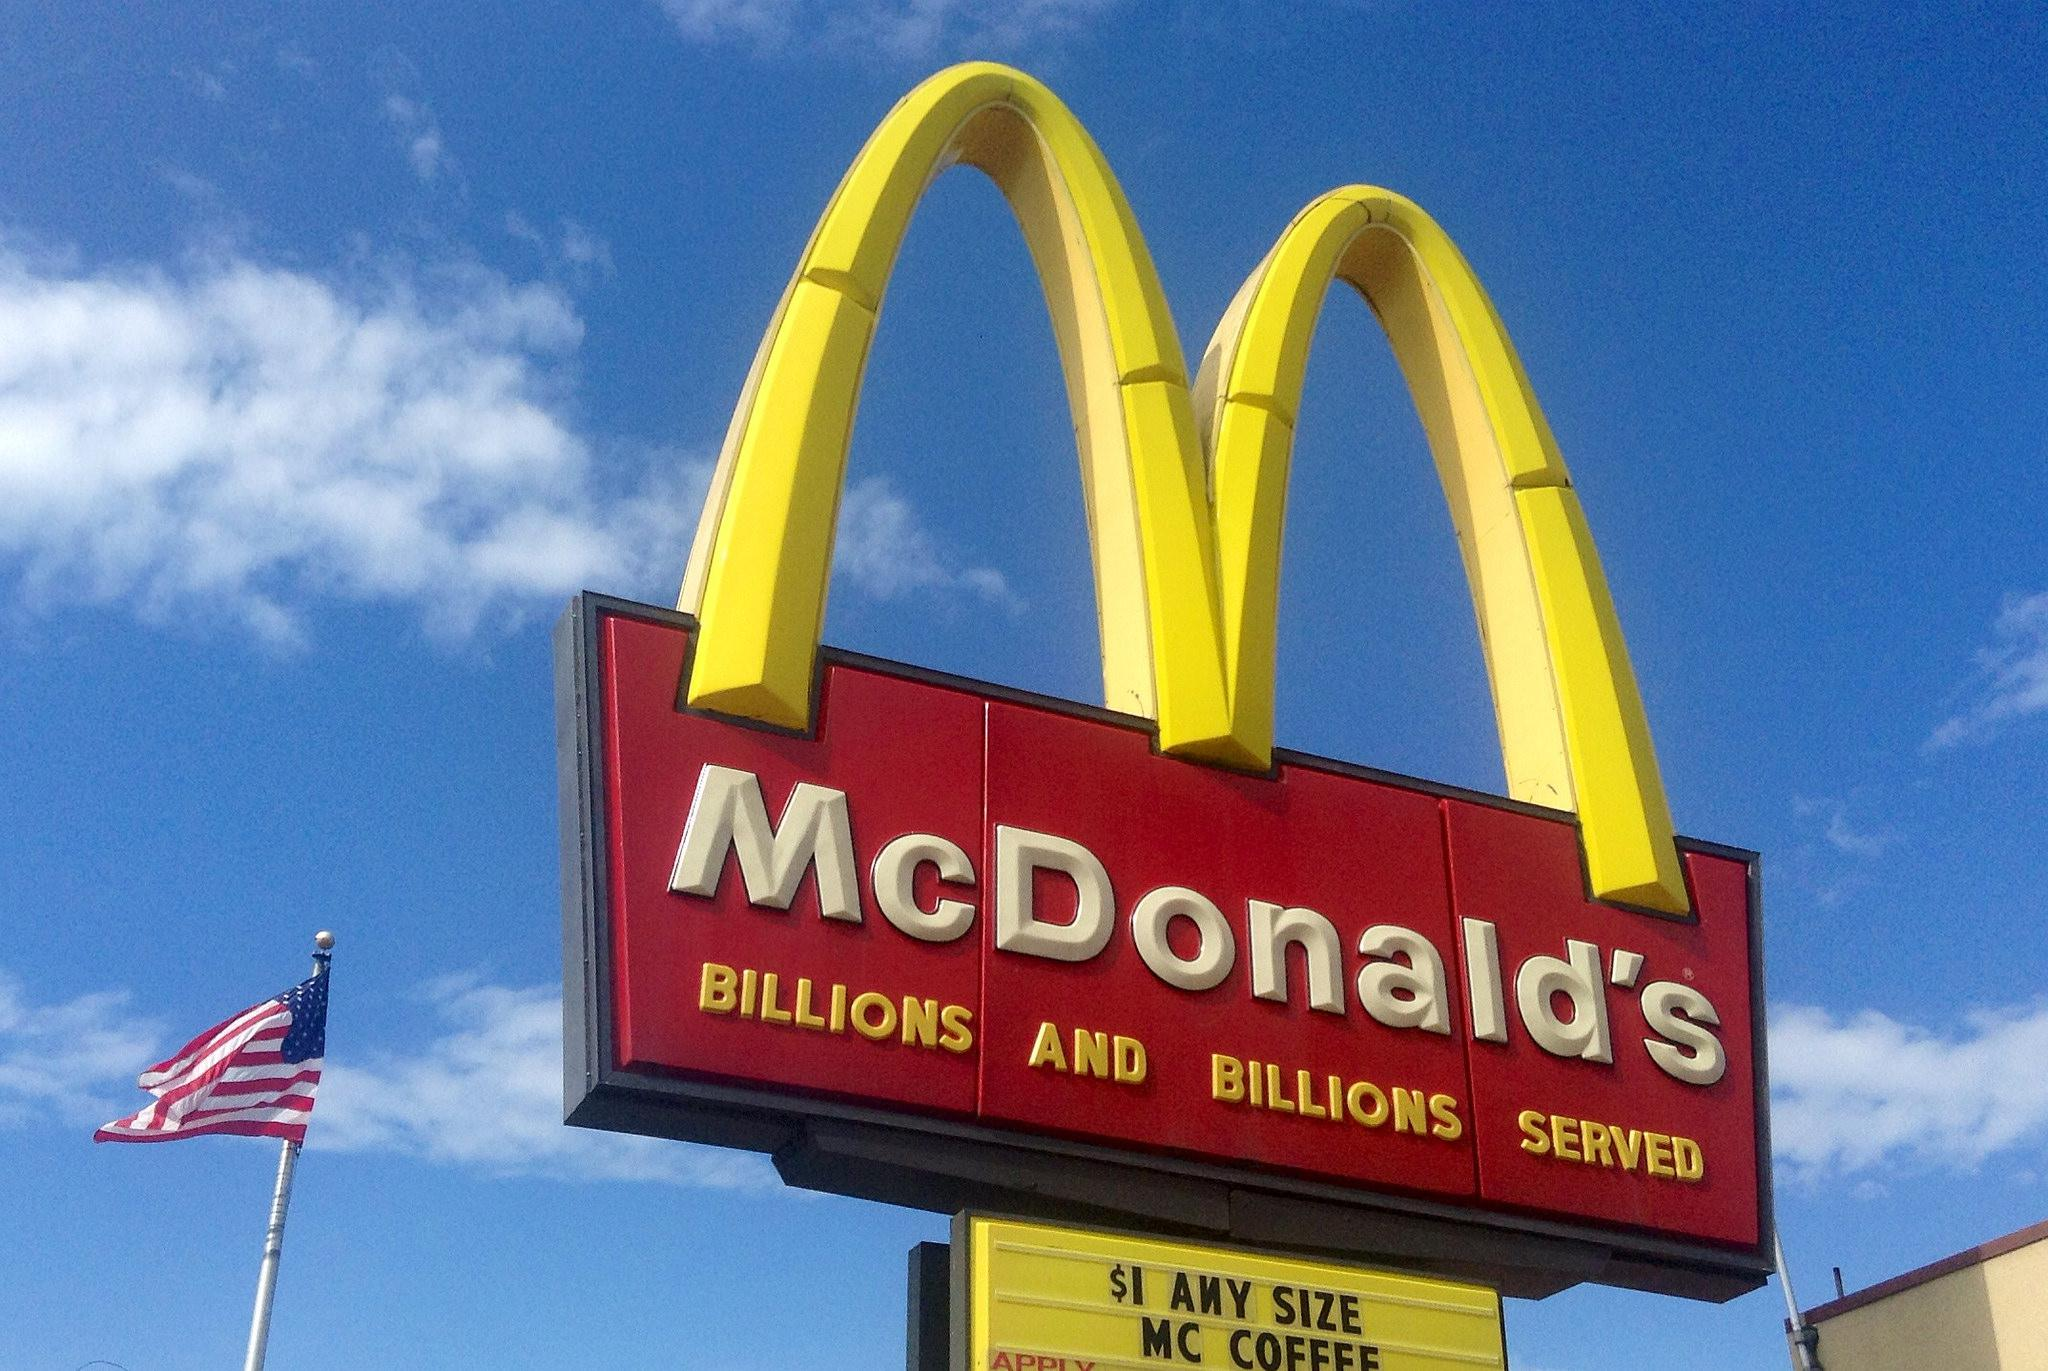 Local Mcdonalds Restaurants Supporting United Way Fundraising